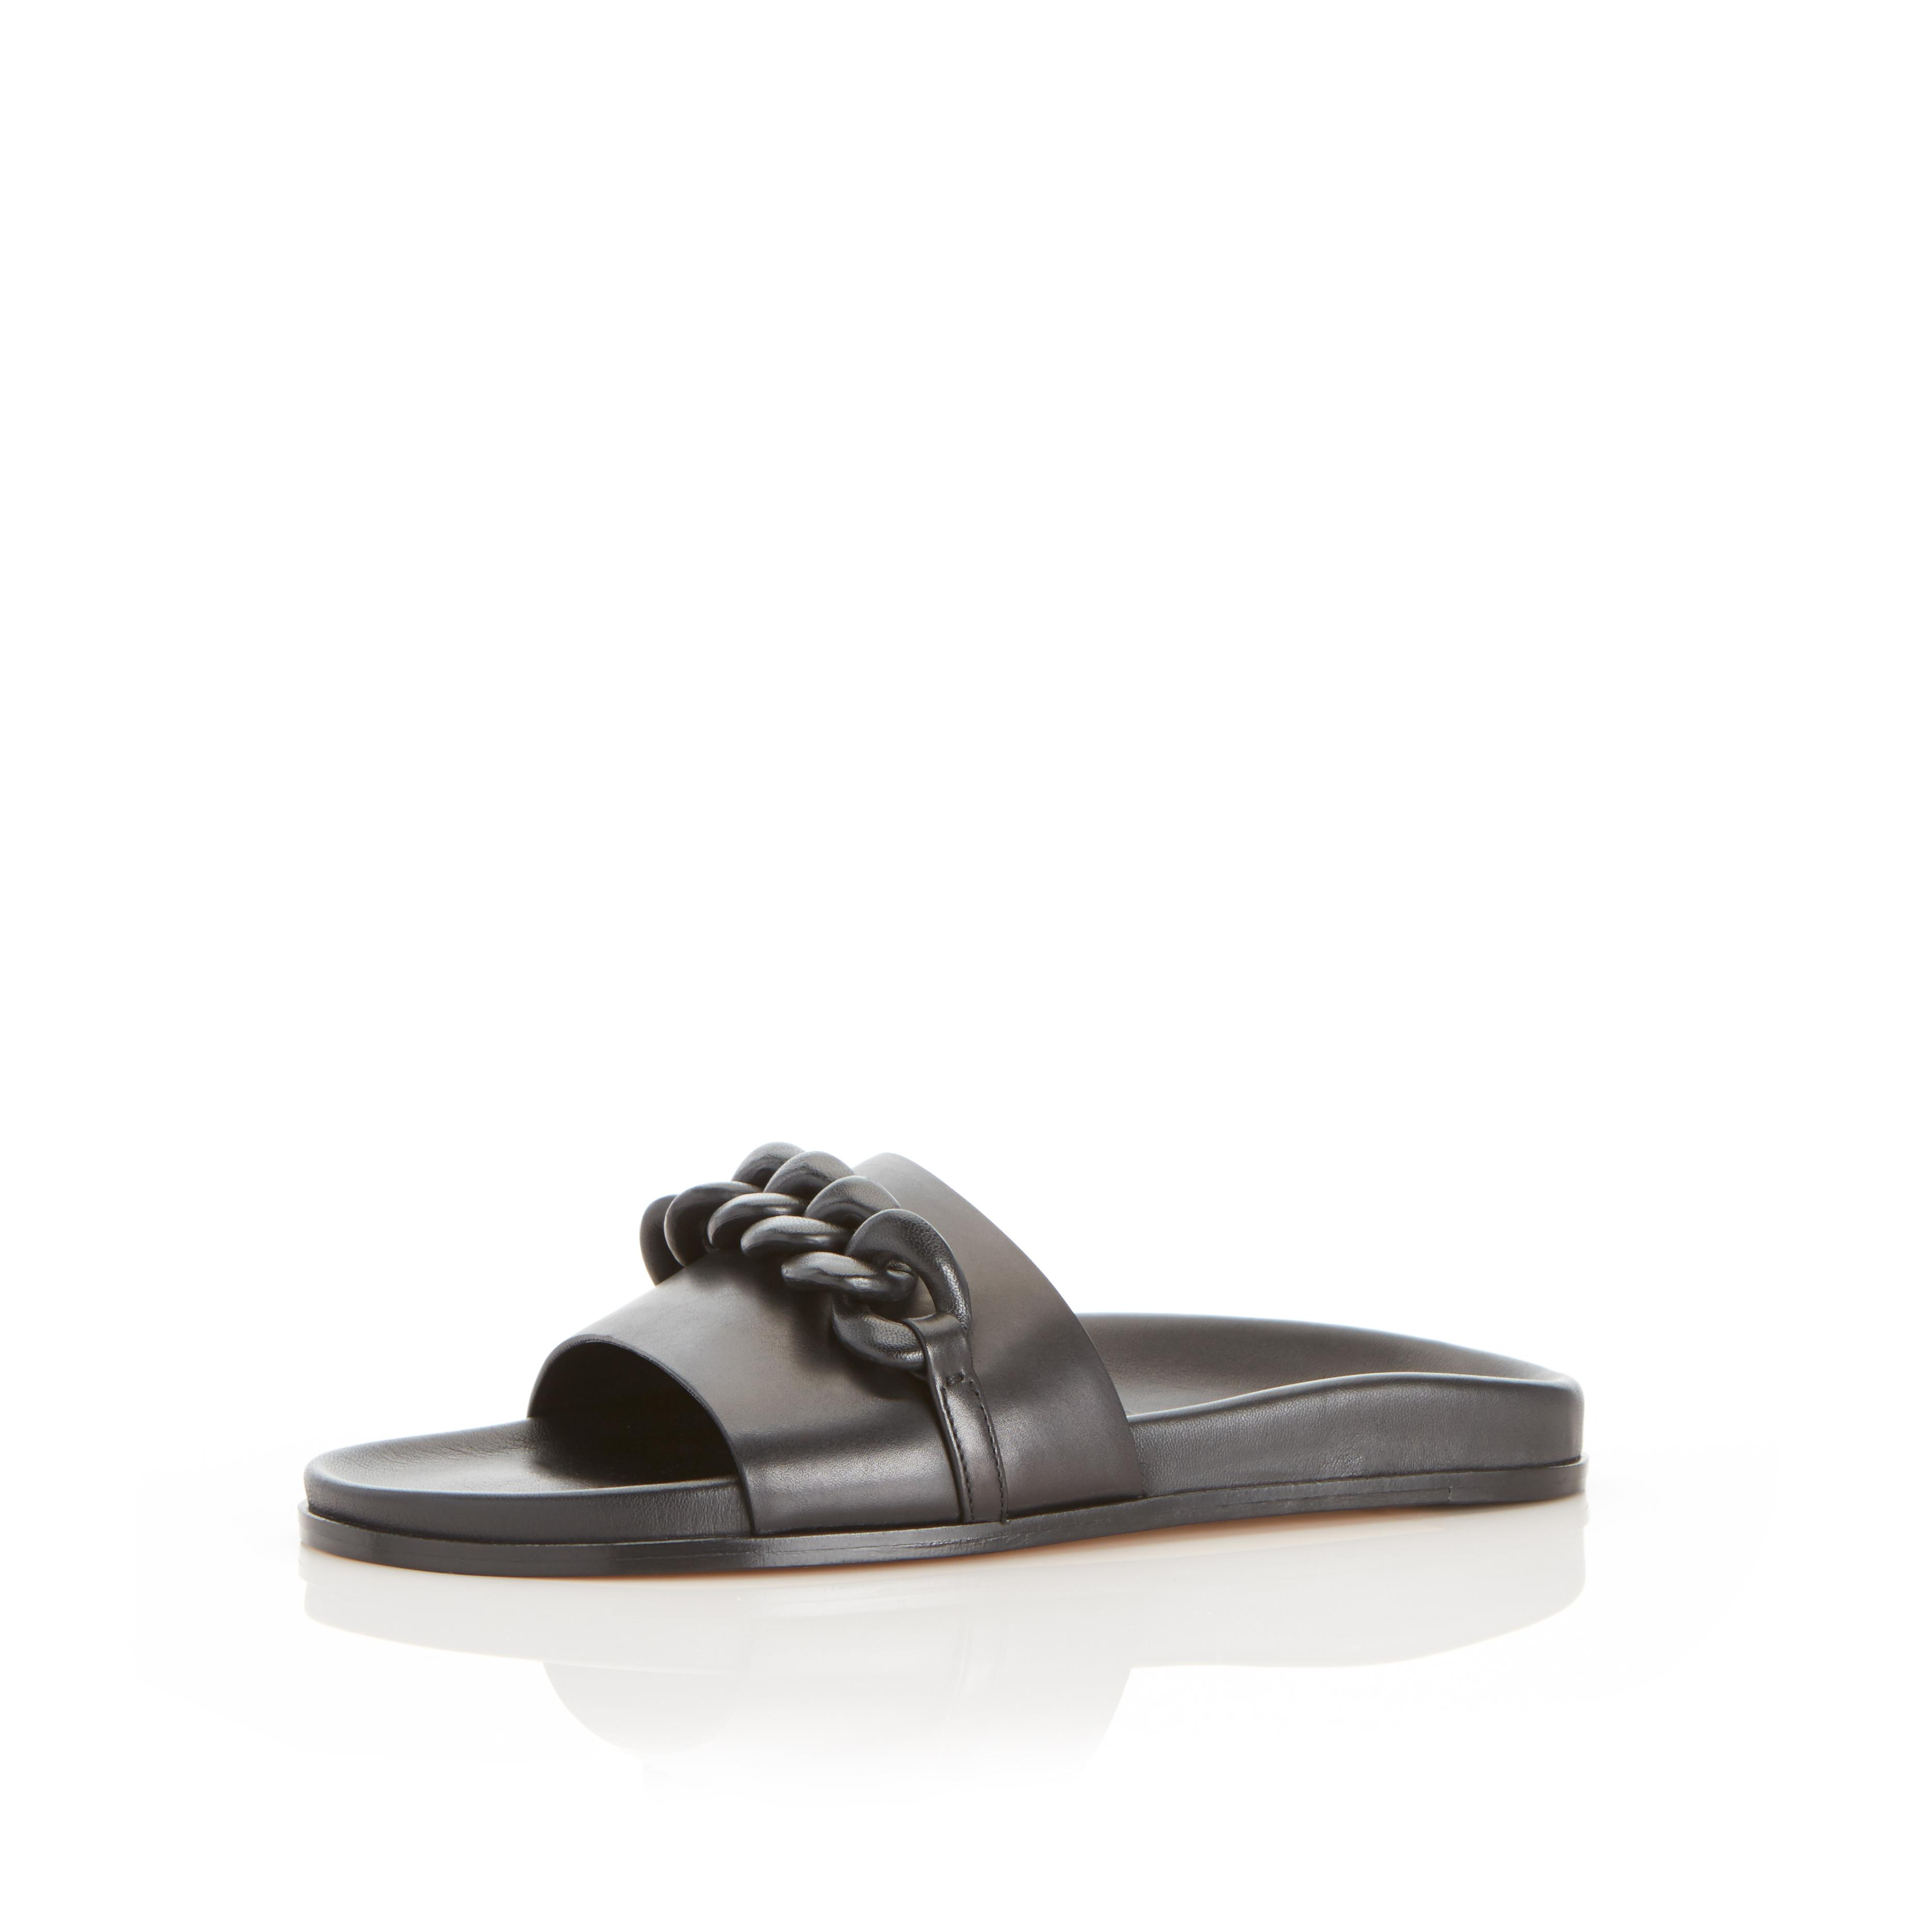 Christine   Leather Chain Sandal with Contoured Footbed 1